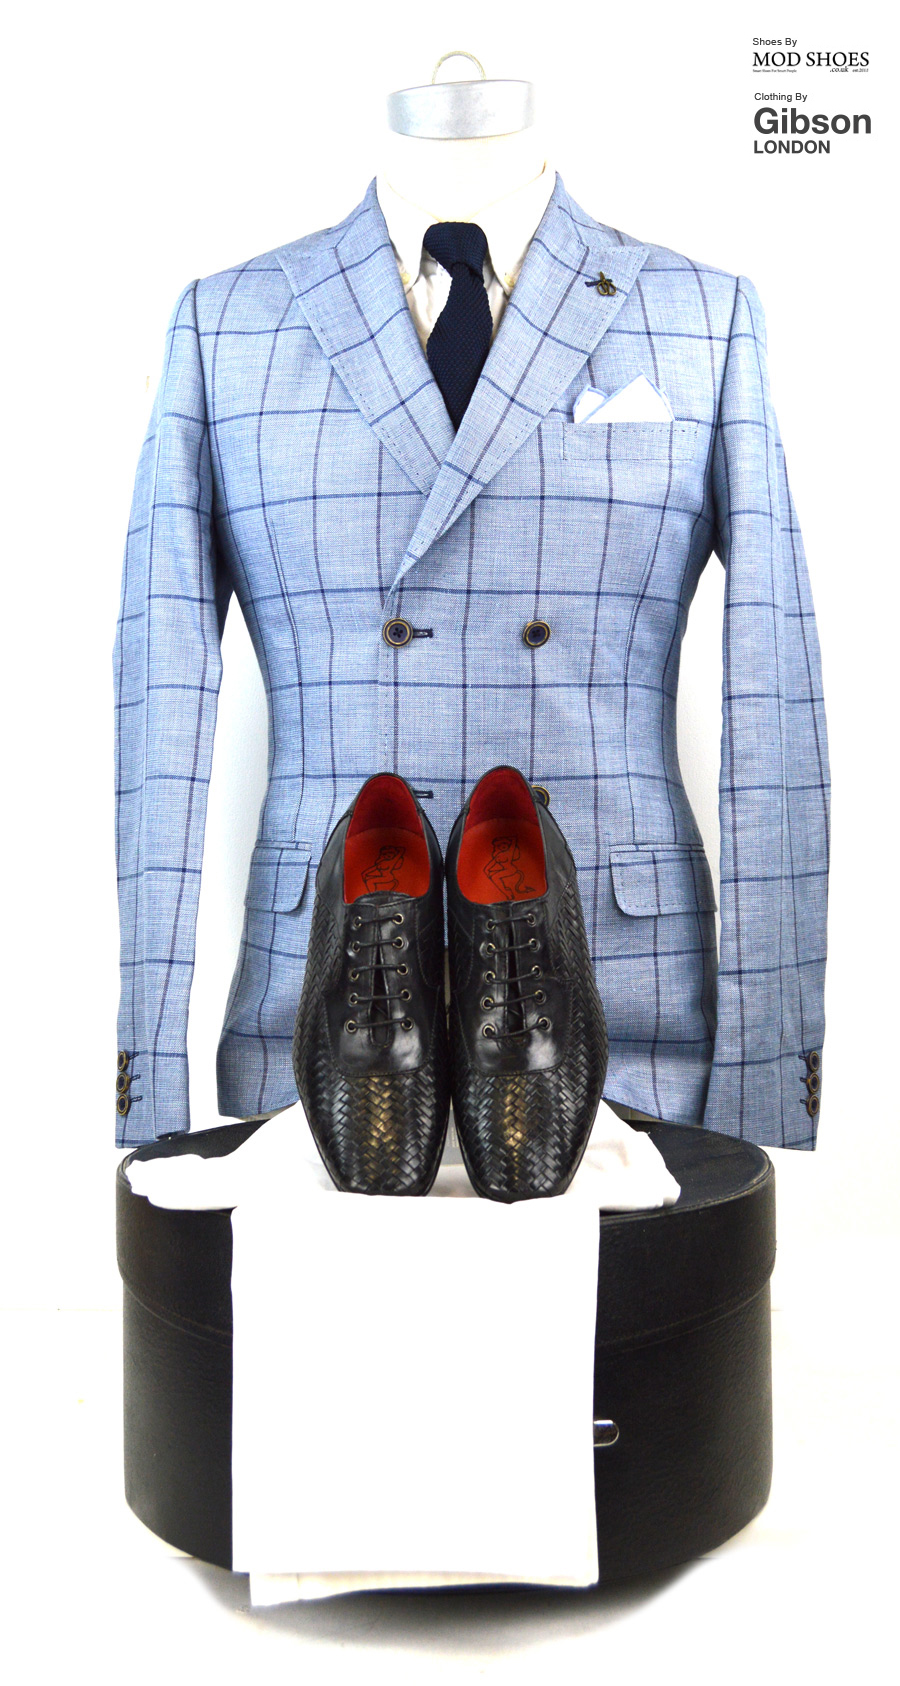 modshoes-black-weavers-with-light-blue-jacket-from-gibson-clothes